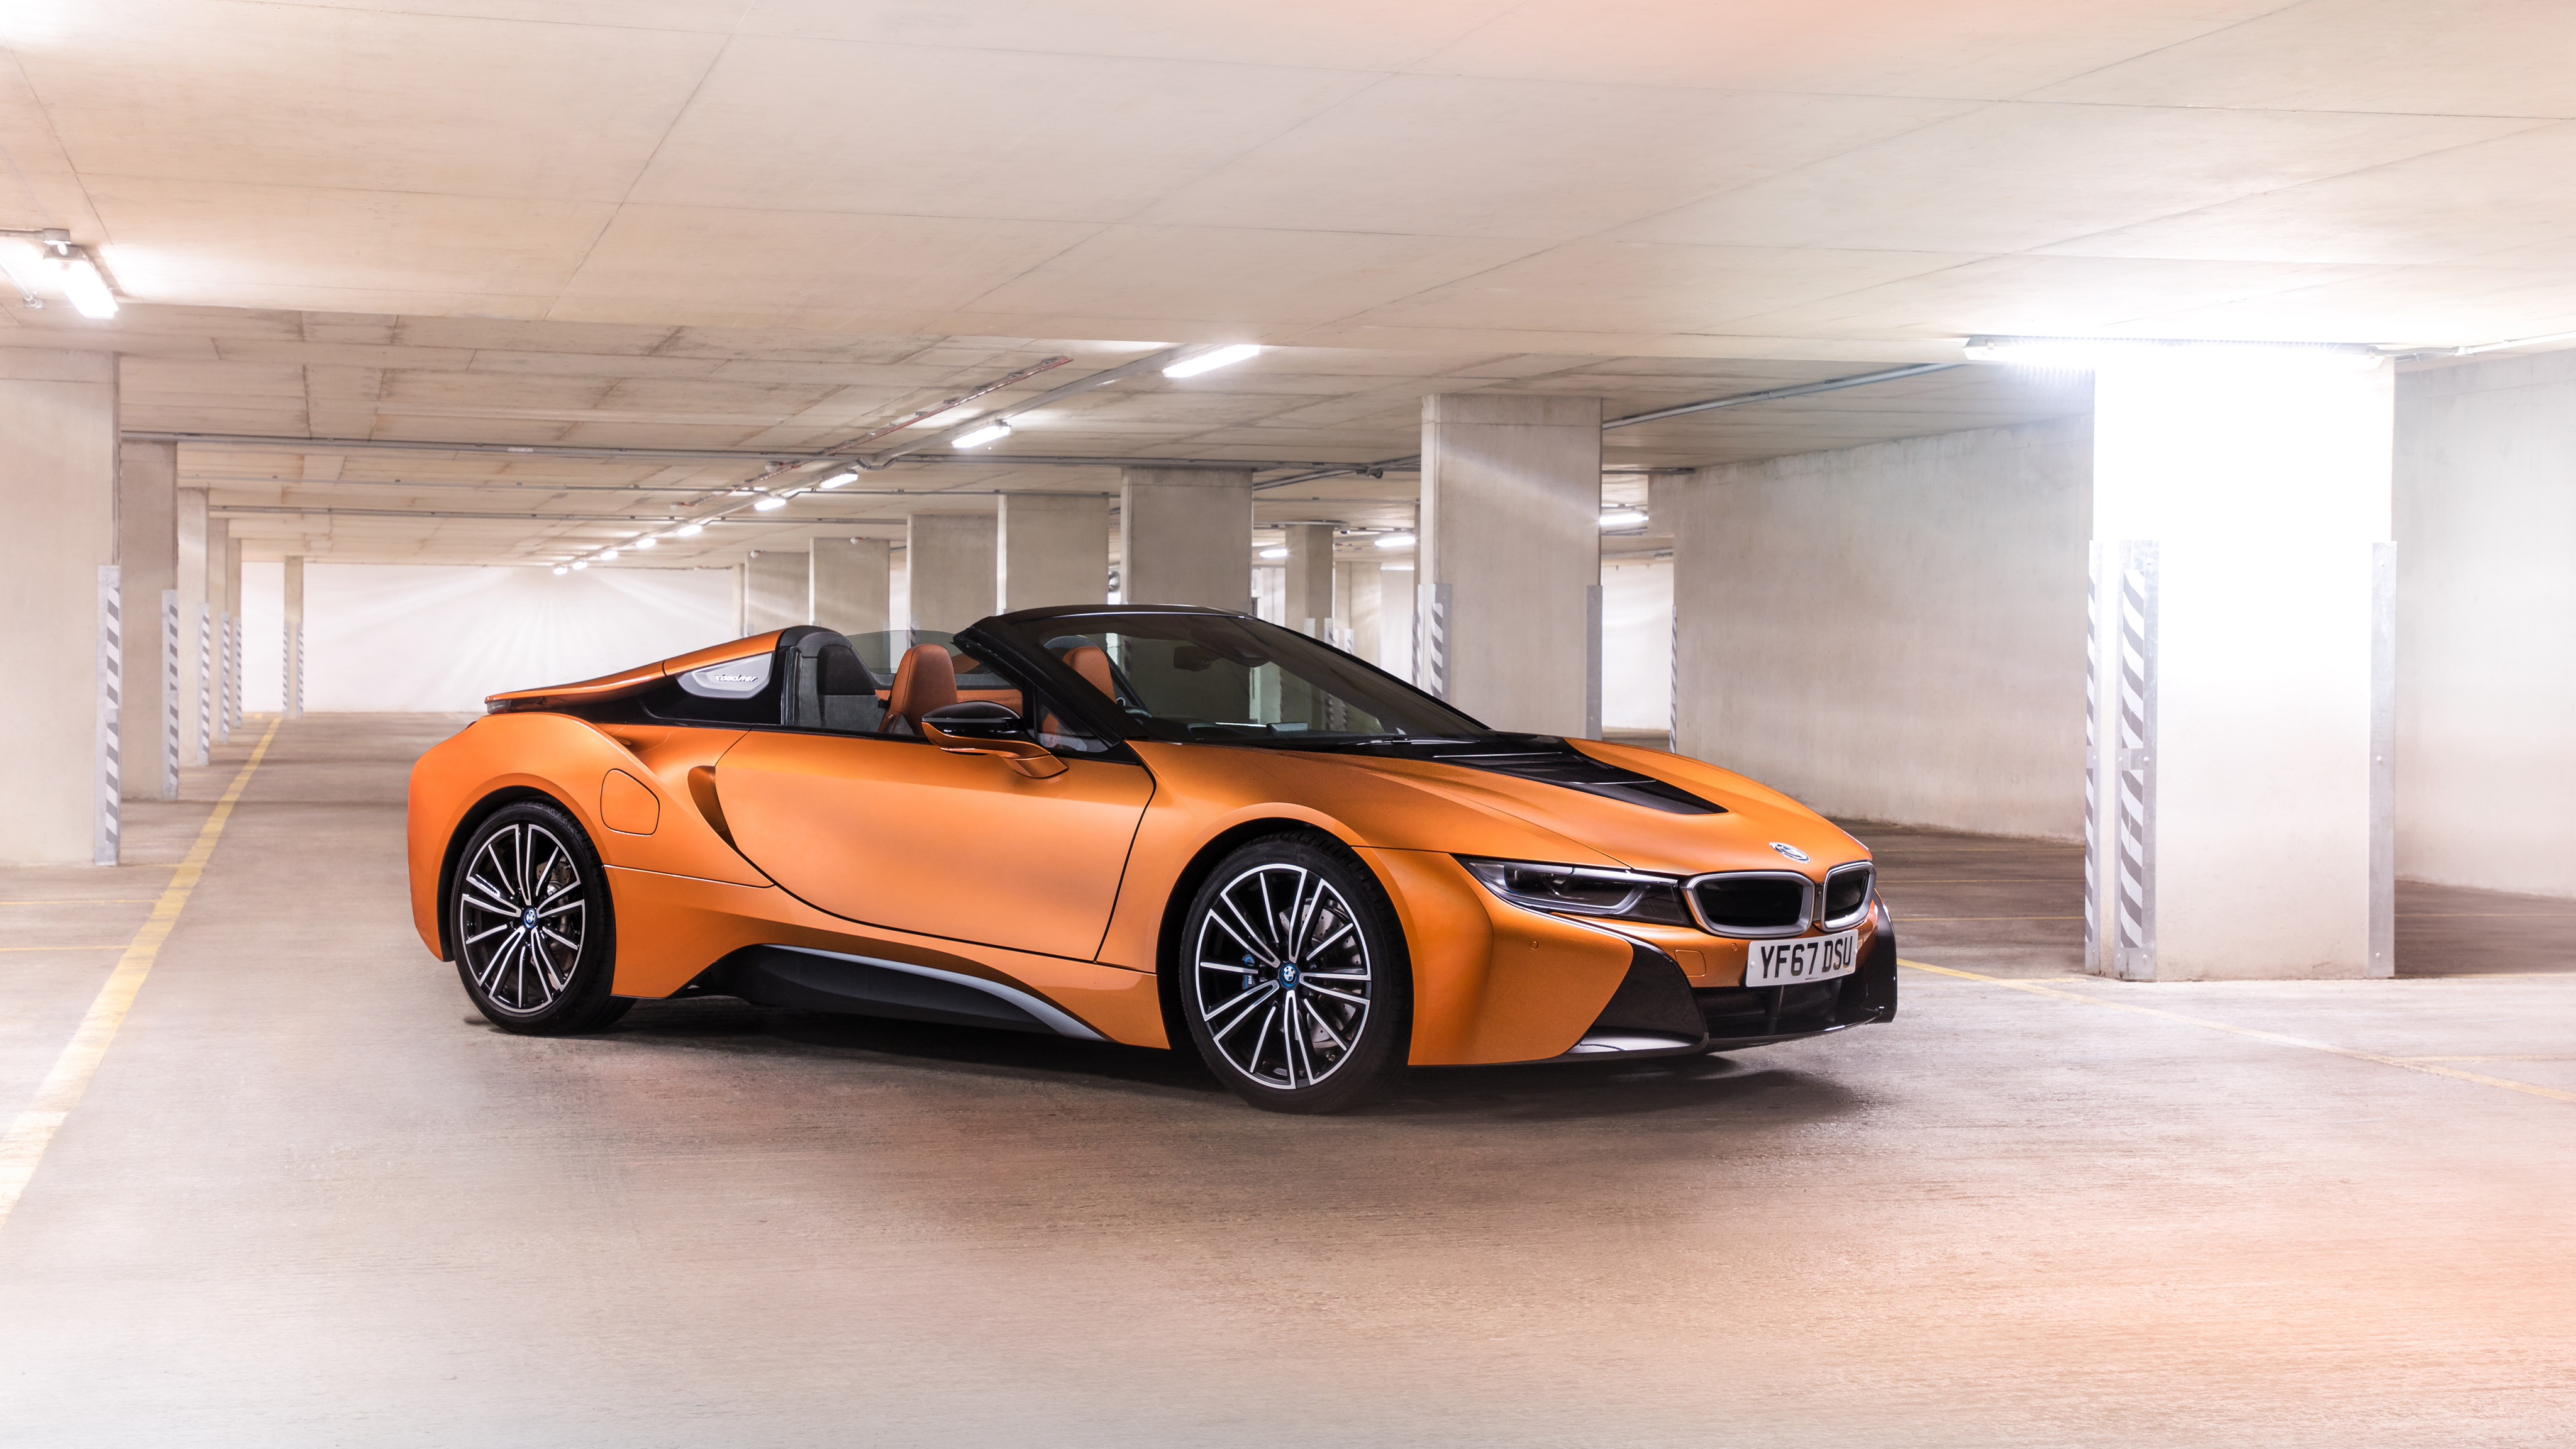 Bmw I8 Roadster 2018 4k 4 Wallpaper Hd Car Wallpapers Id 10921